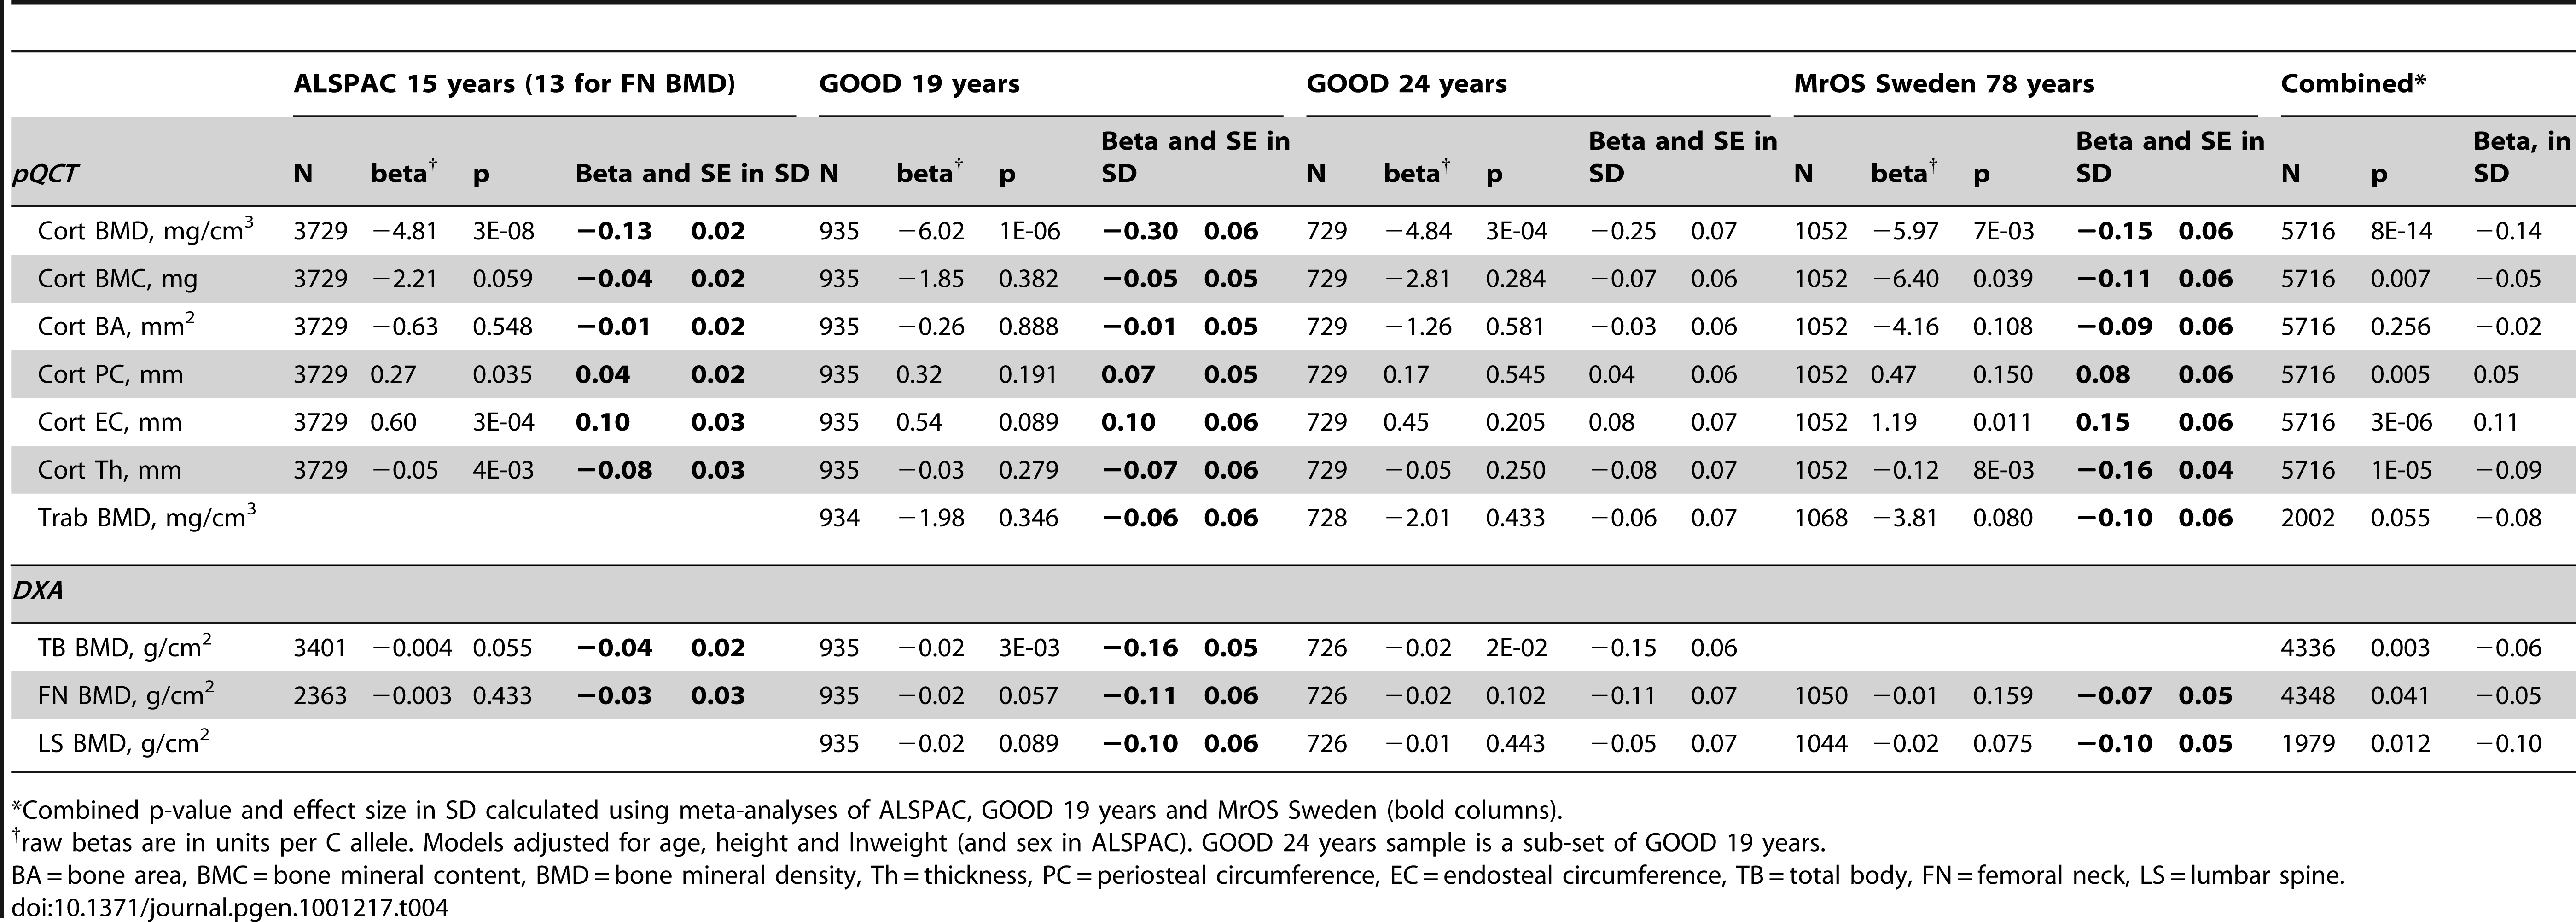 rs1021188 associations with bone parameters at different ages and meta-analyses results (combining ALSPAC, GOOD 19, and MrOS Sweden).